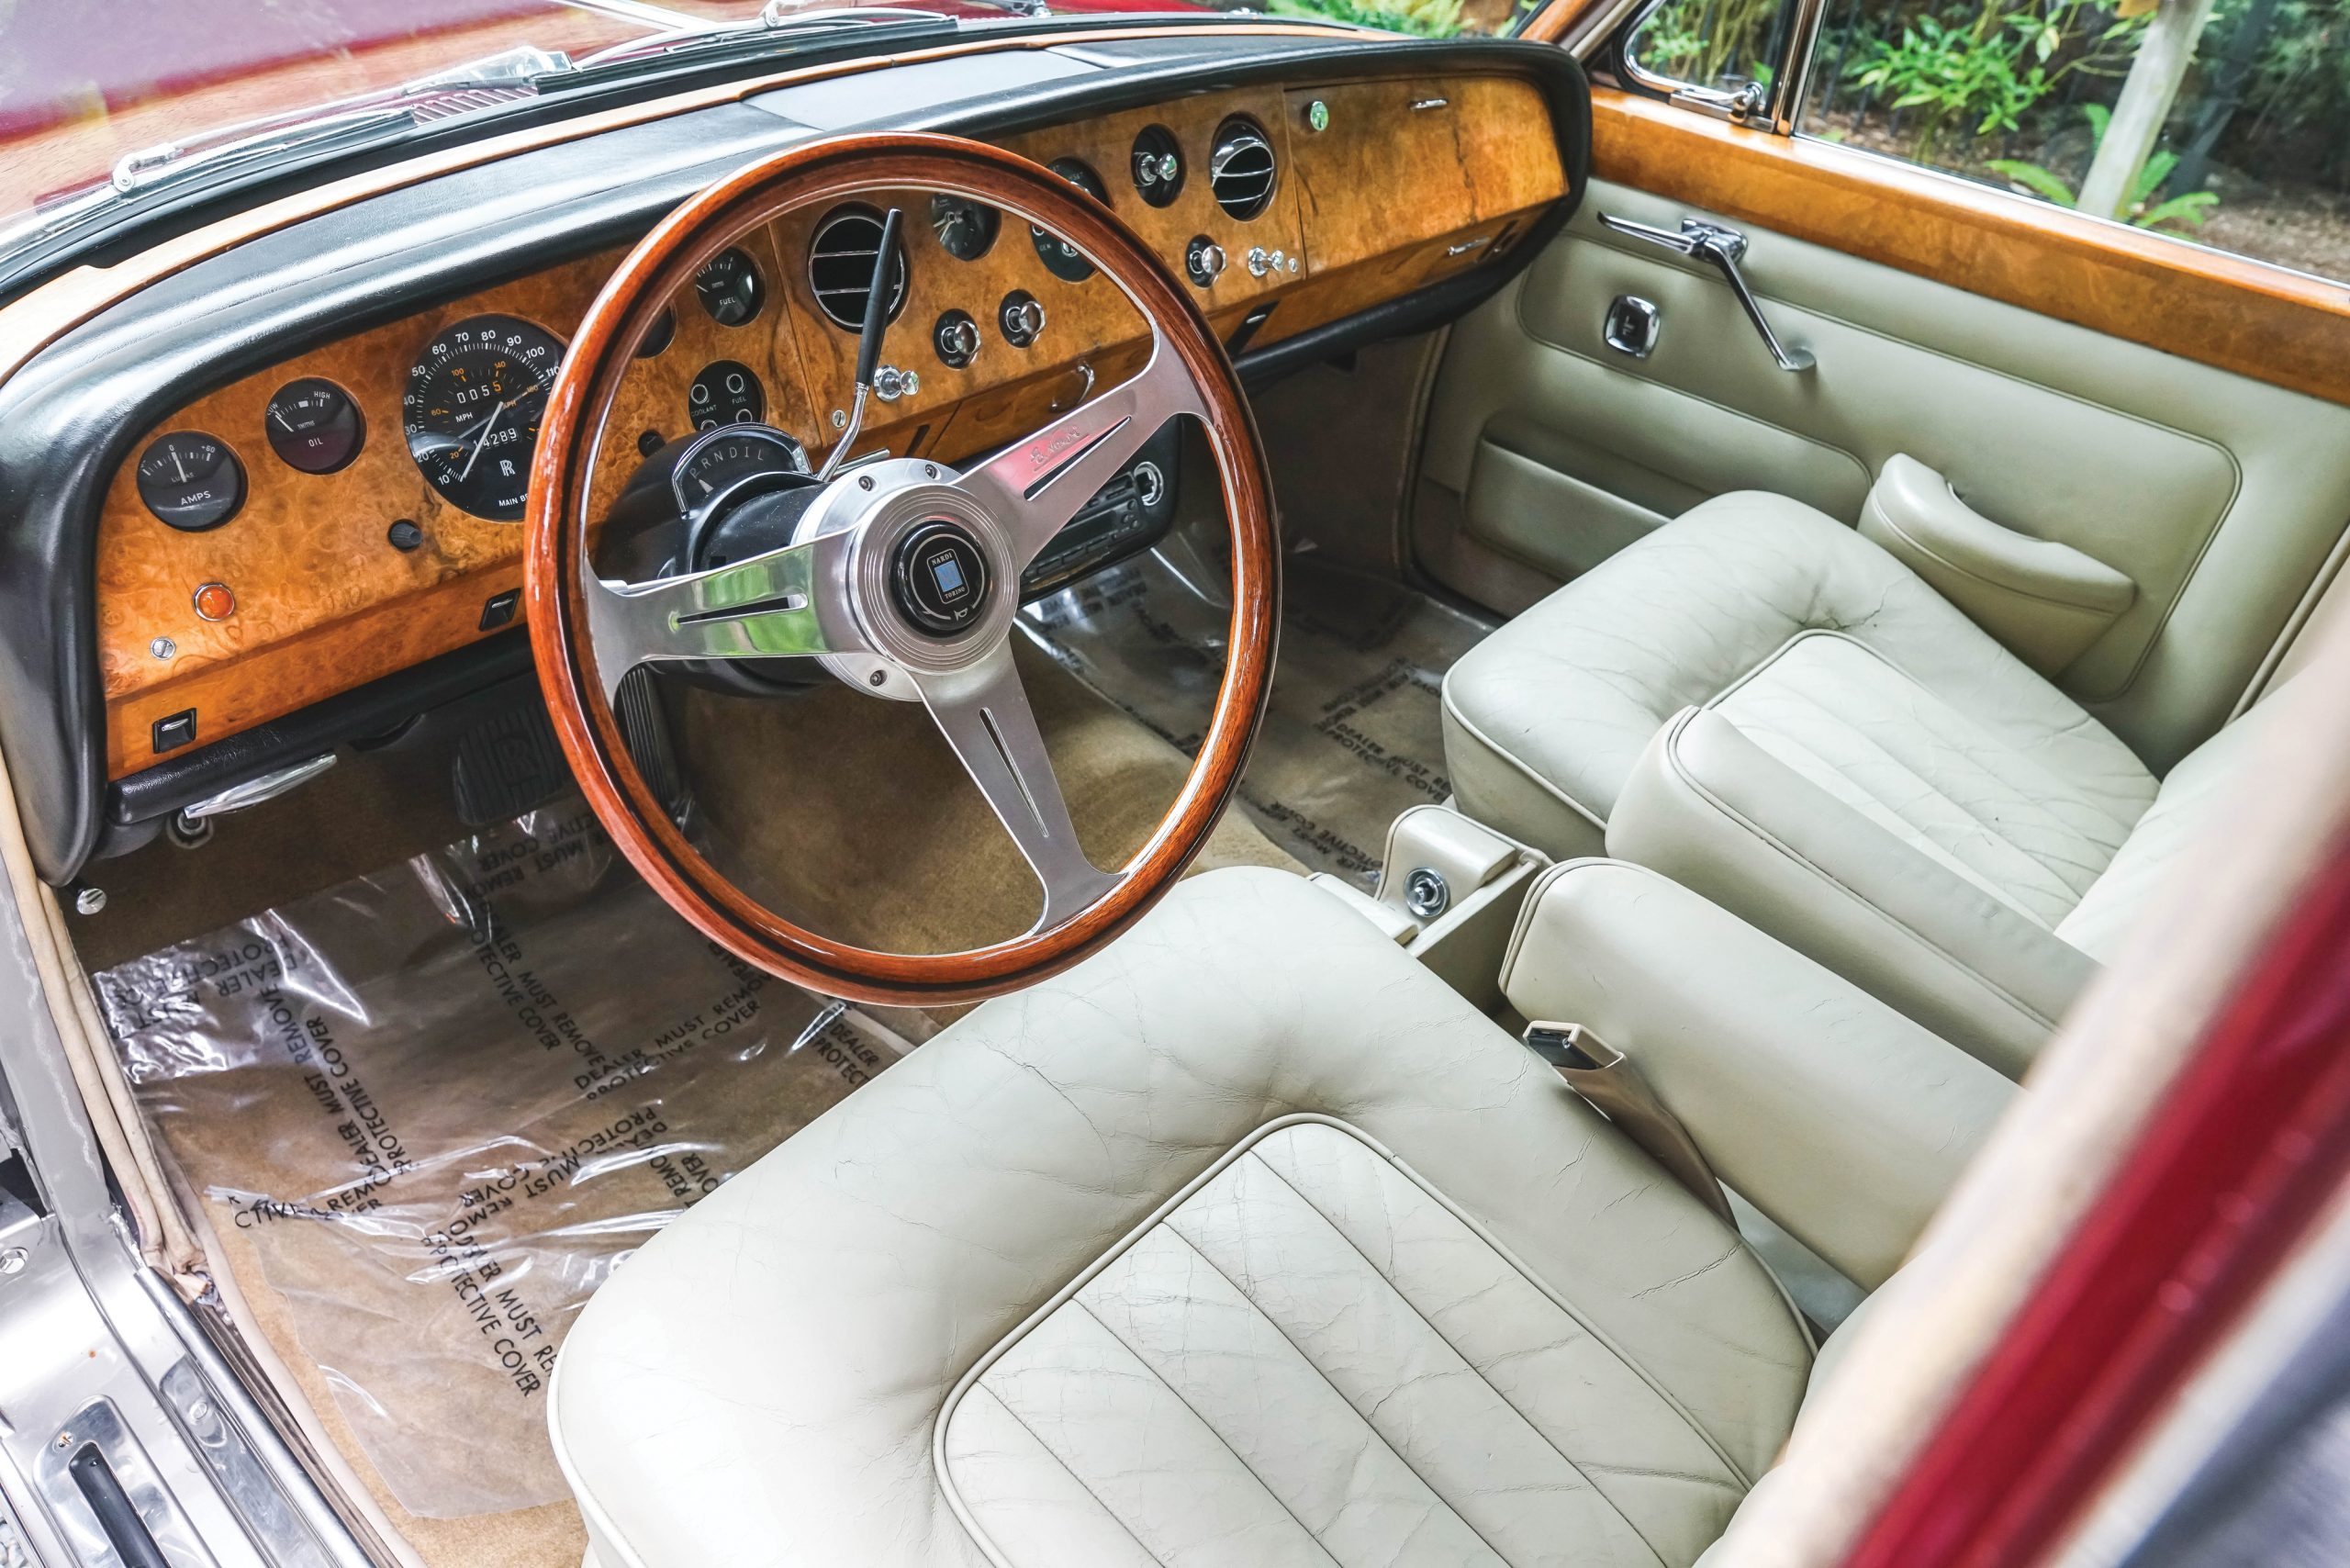 1968 Rolls Royce Silver Shadow interior